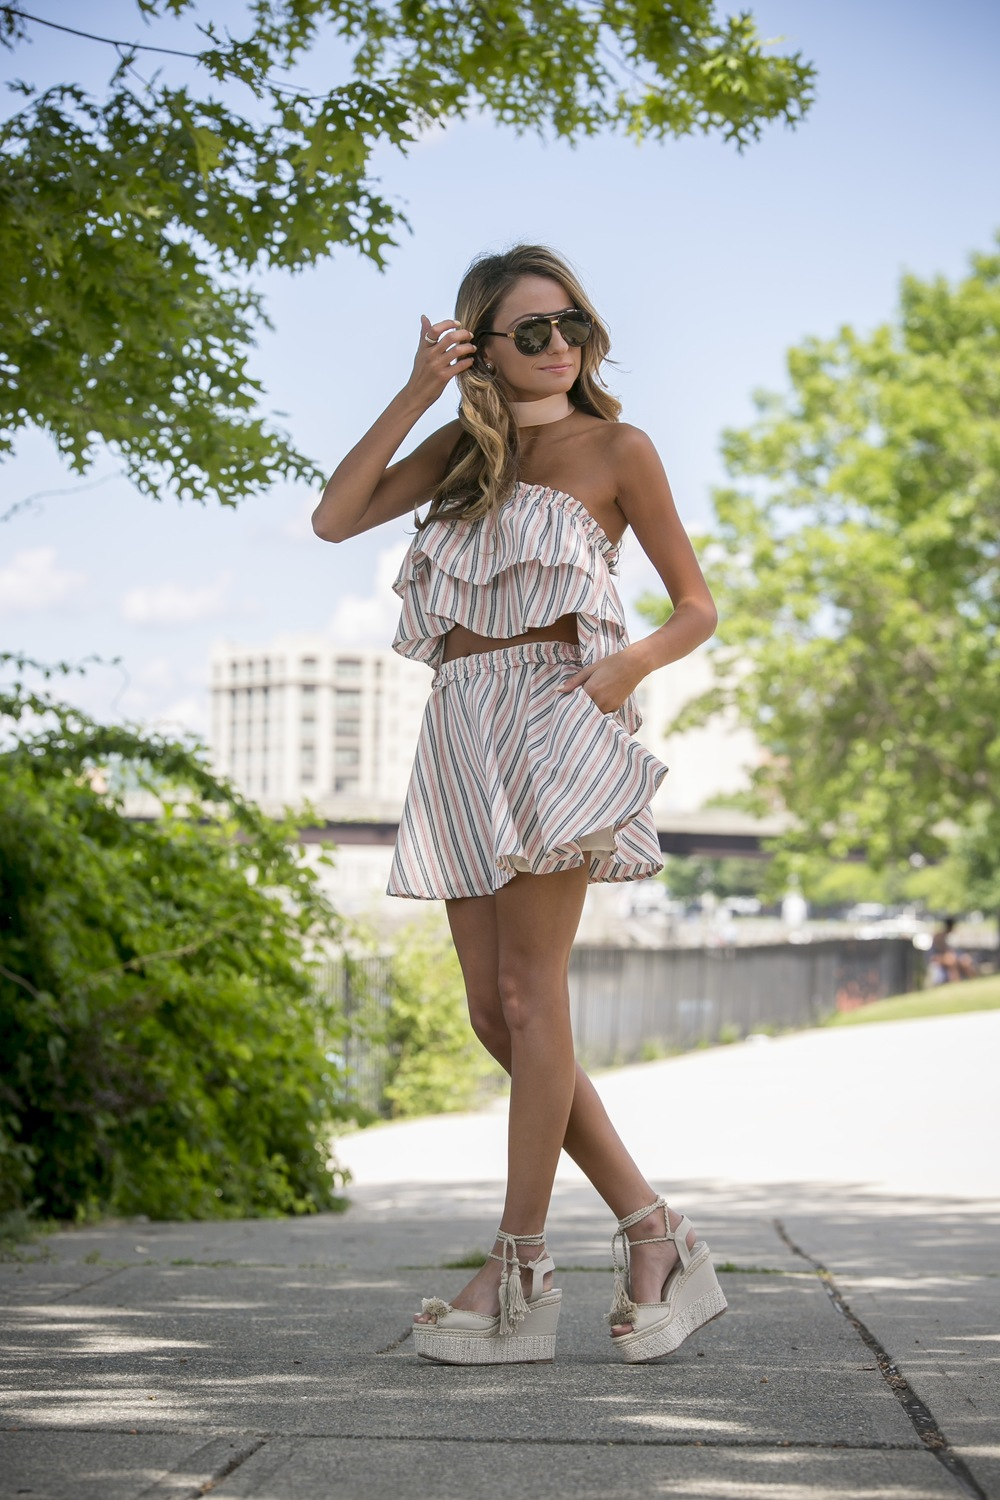 summer streetstyle featuring a matching skirt set from revolve clothing